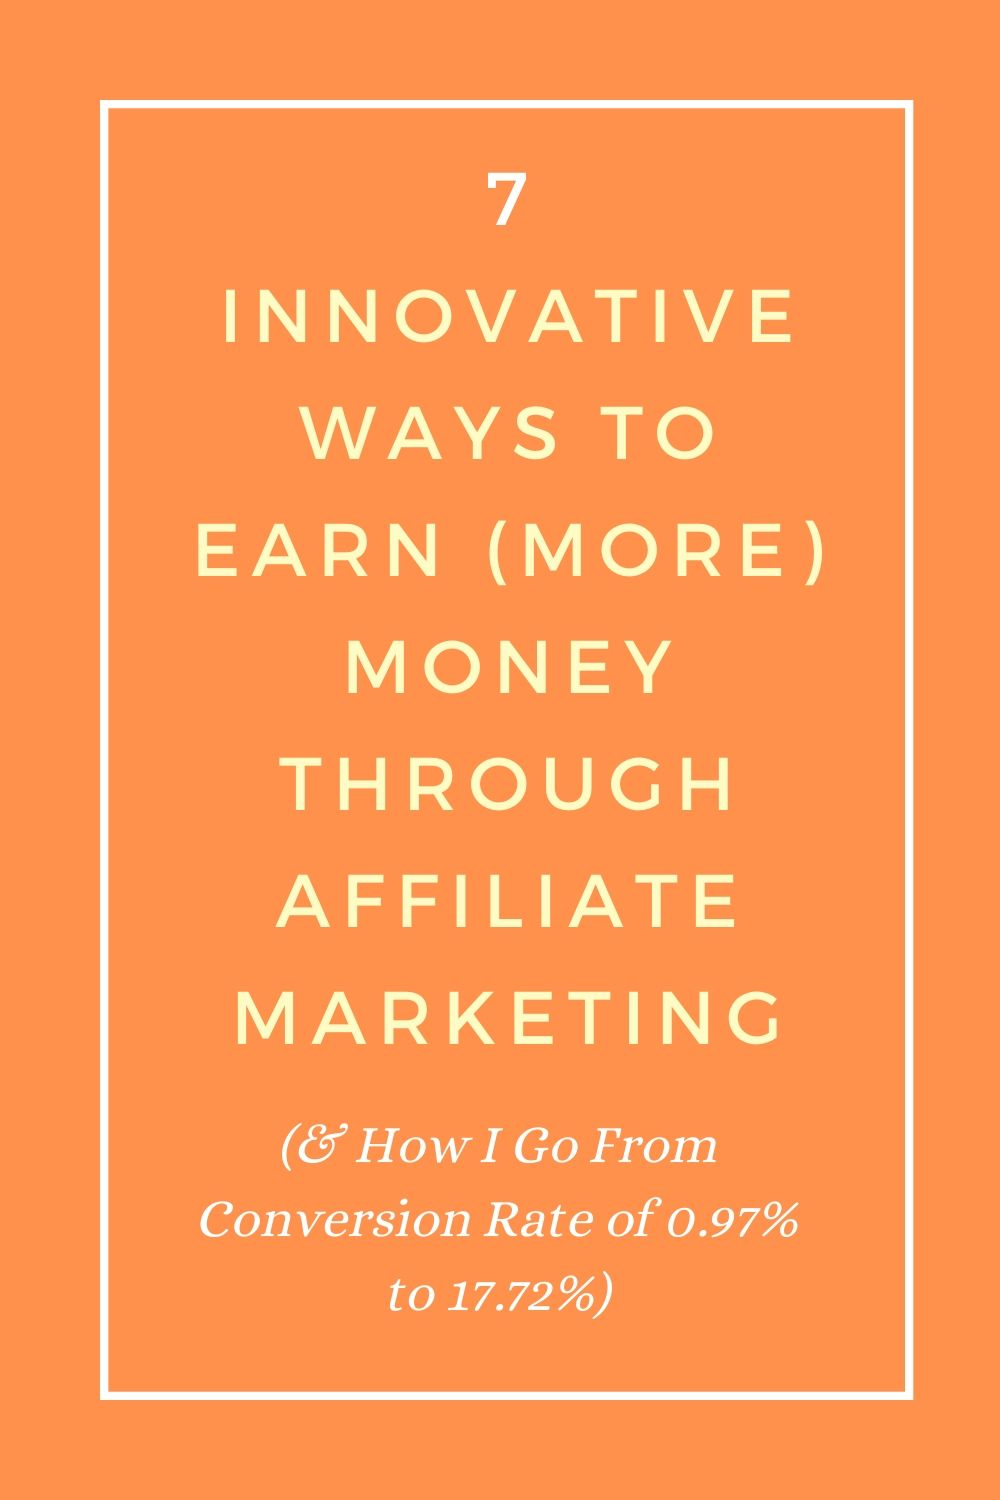 Affiliate Marketing: 7 Innovative Ways To Earn Money As An Affiliate